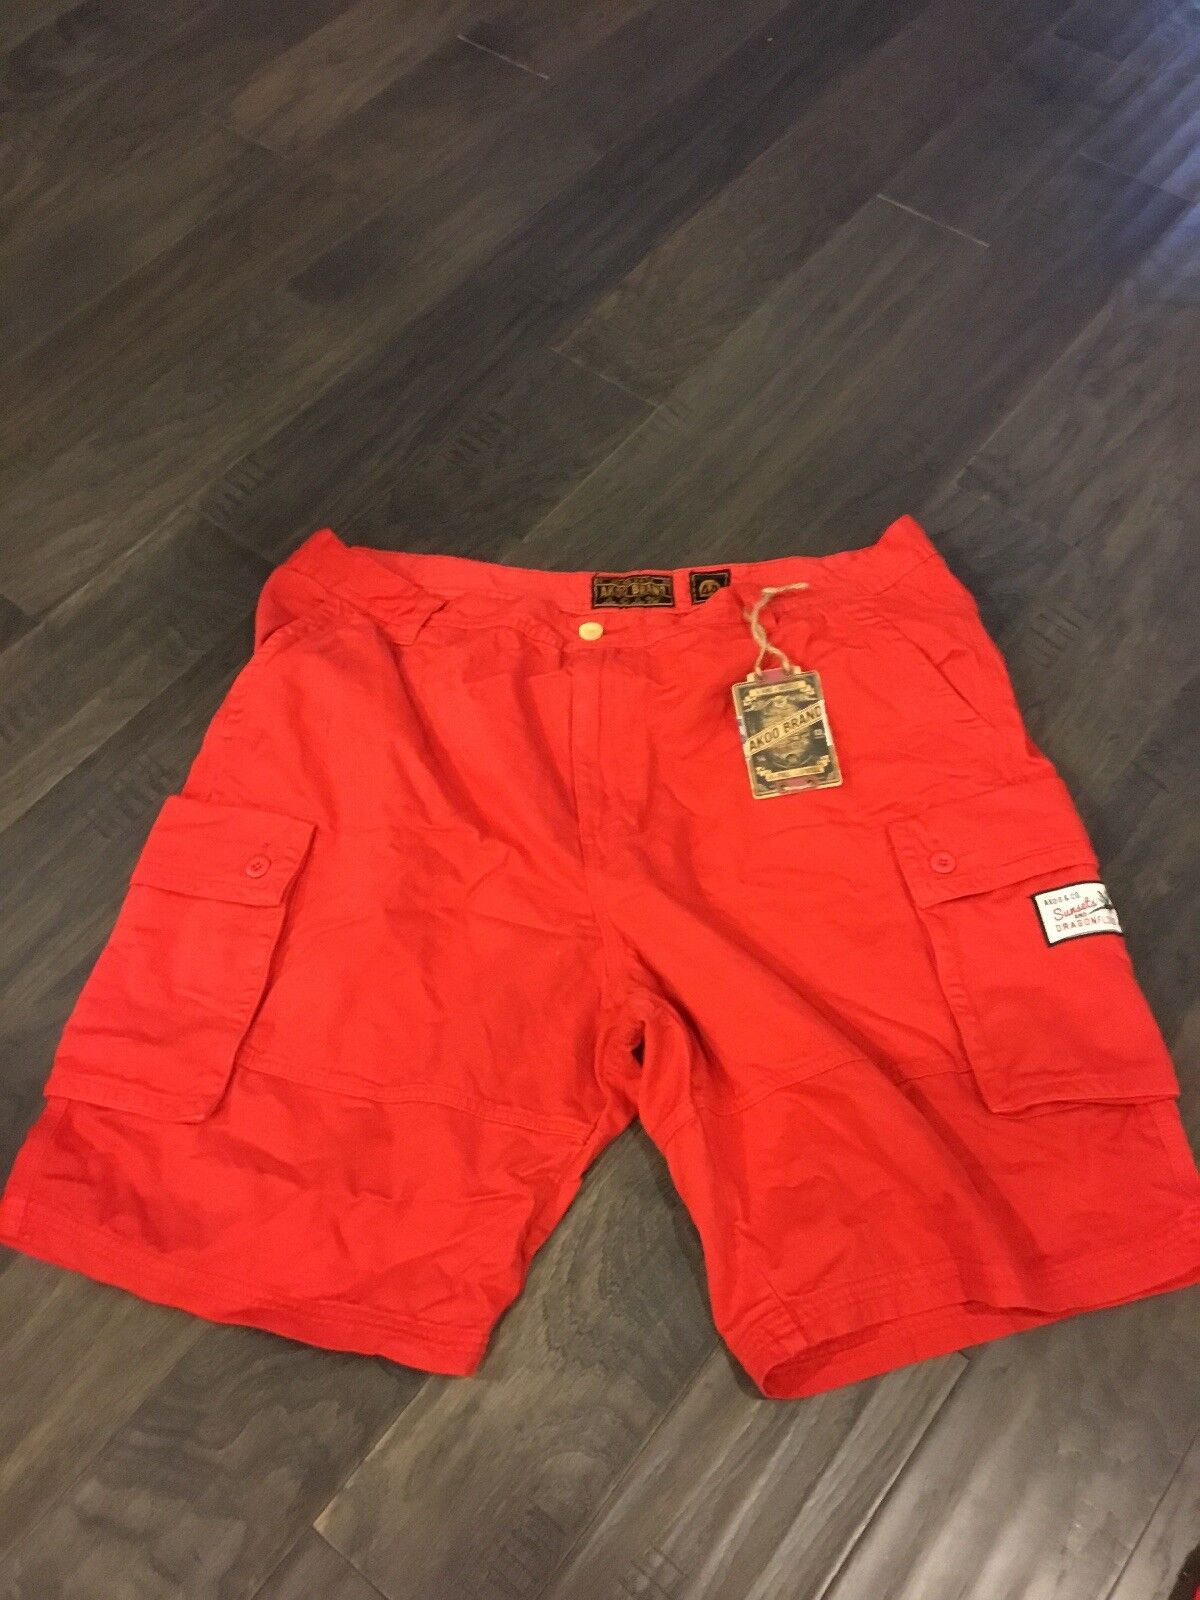 Akoo Brand Men's Shorts Pants New Size 38 Dragonfly Getaway Formula One Cargo Rd